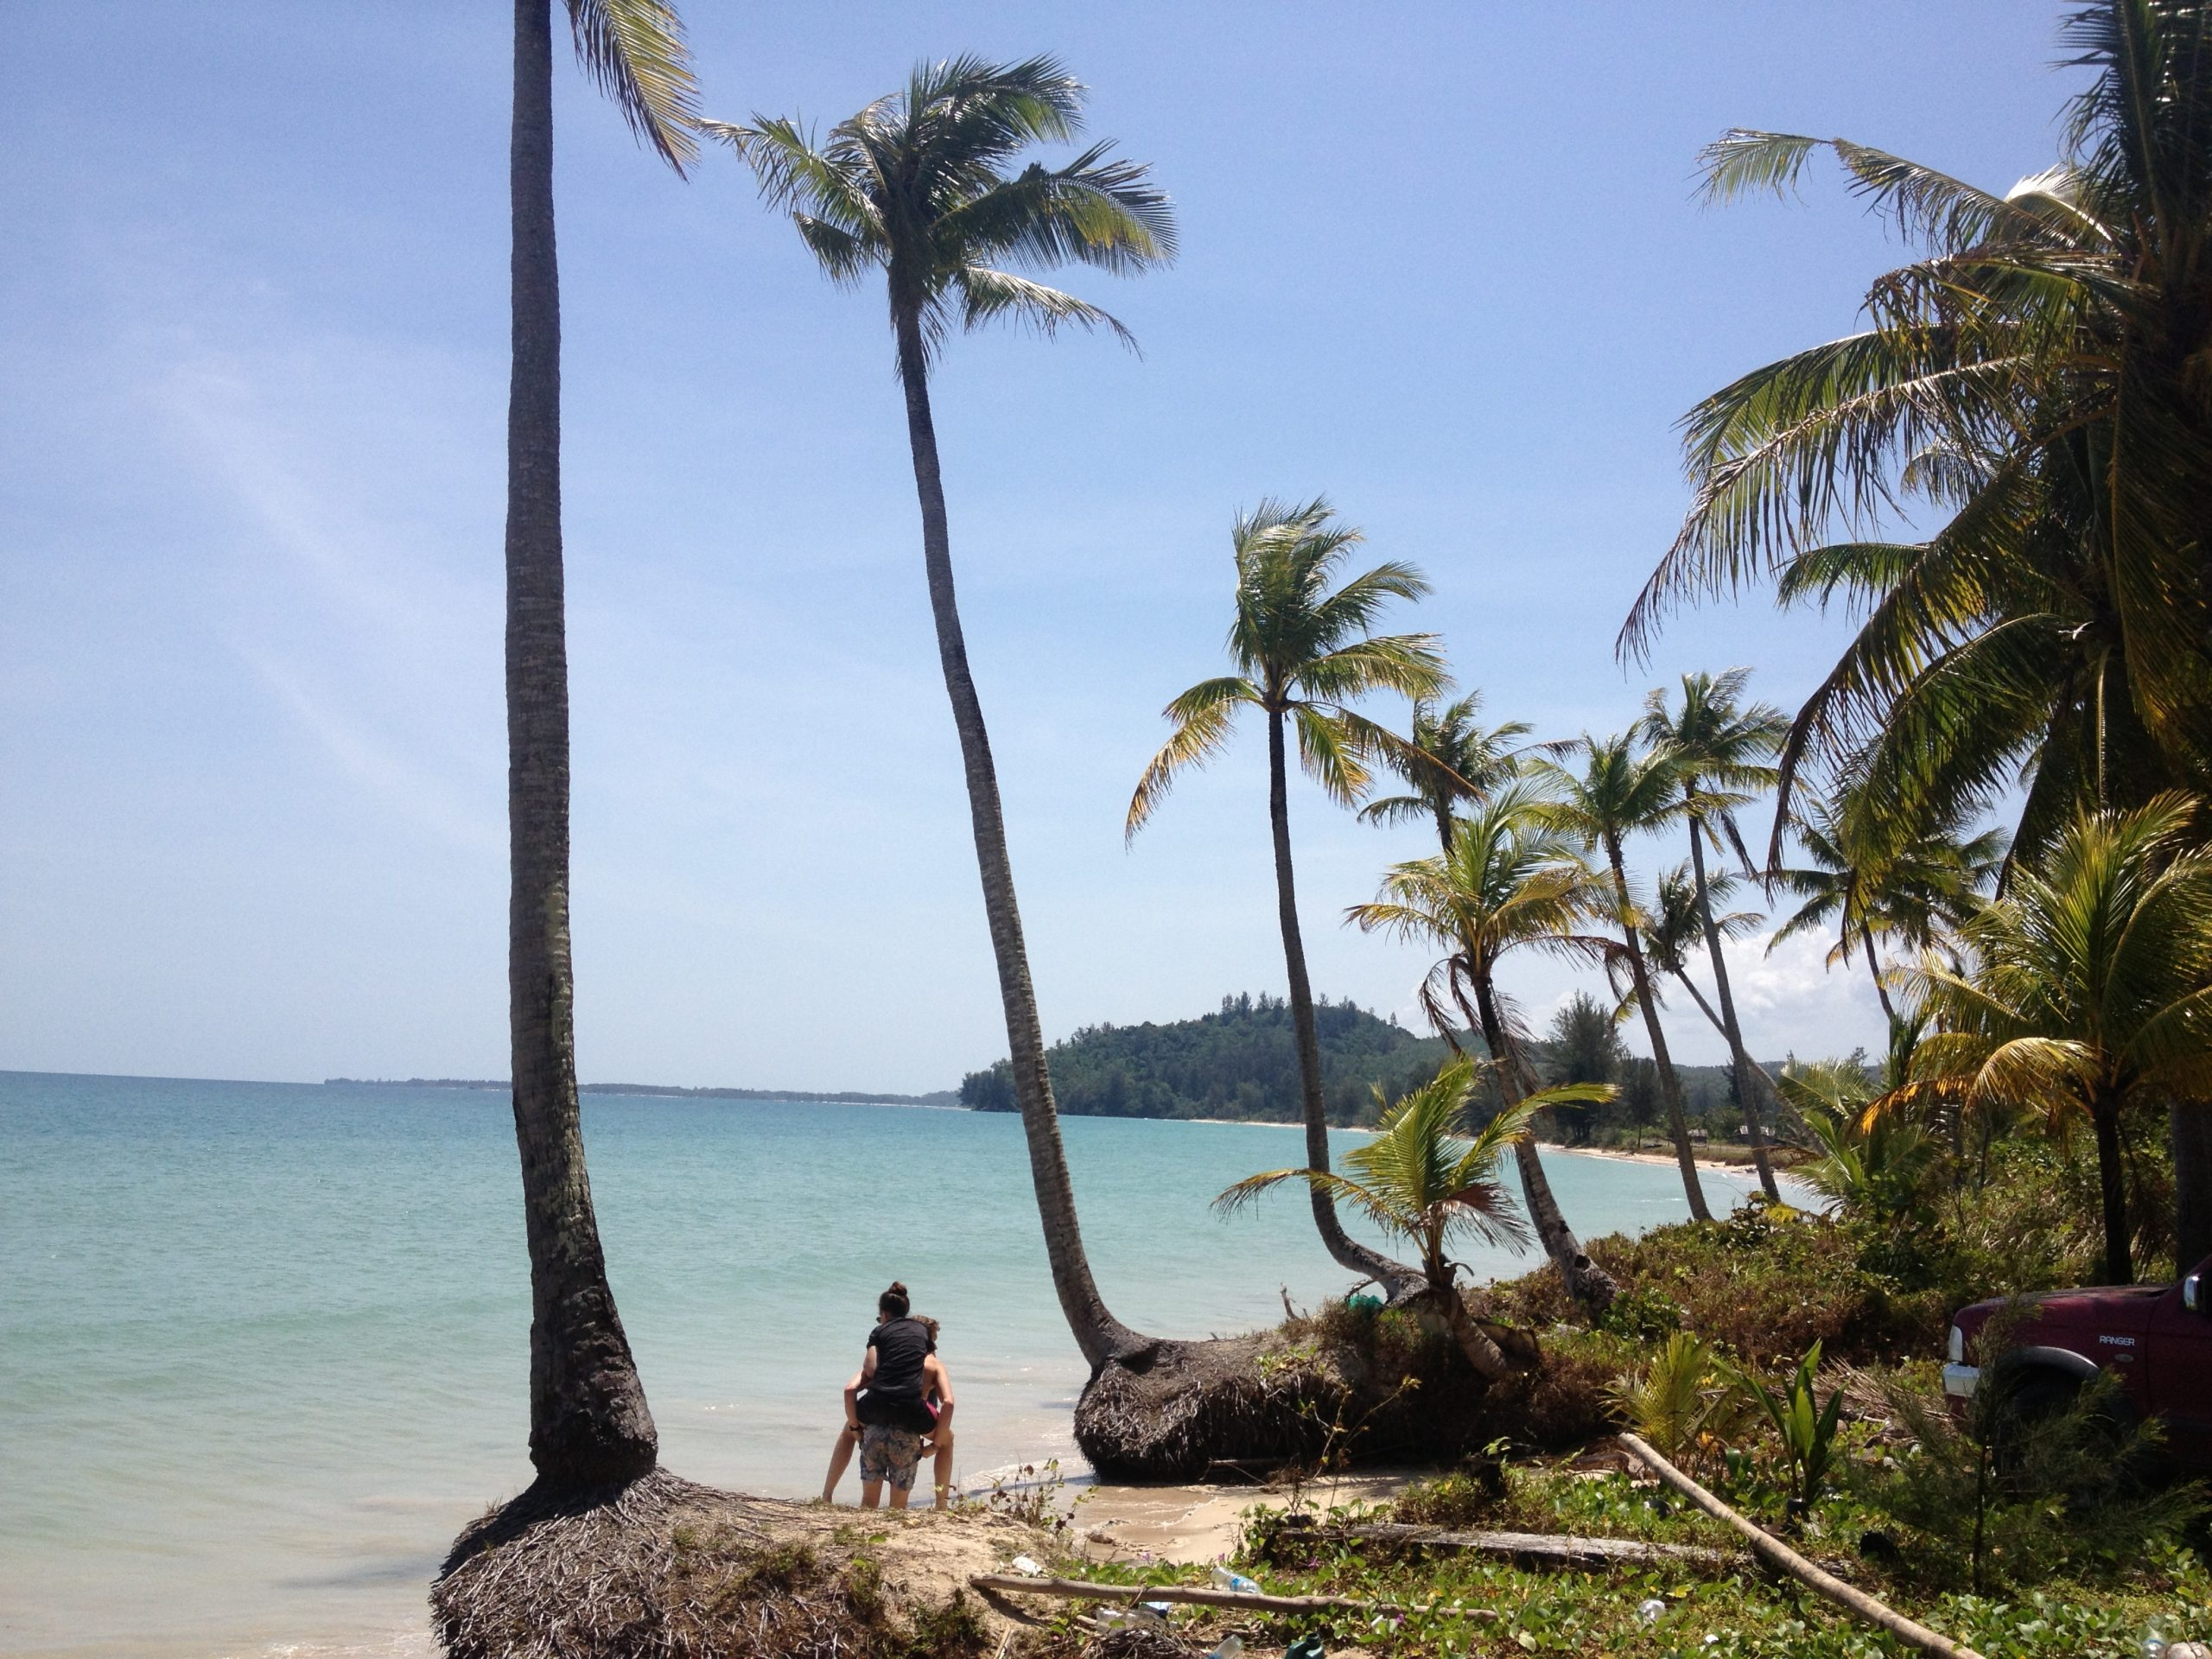 The beach paradise that awaits the weary traveller. Deep blue sea against golden sands and tall palm trees